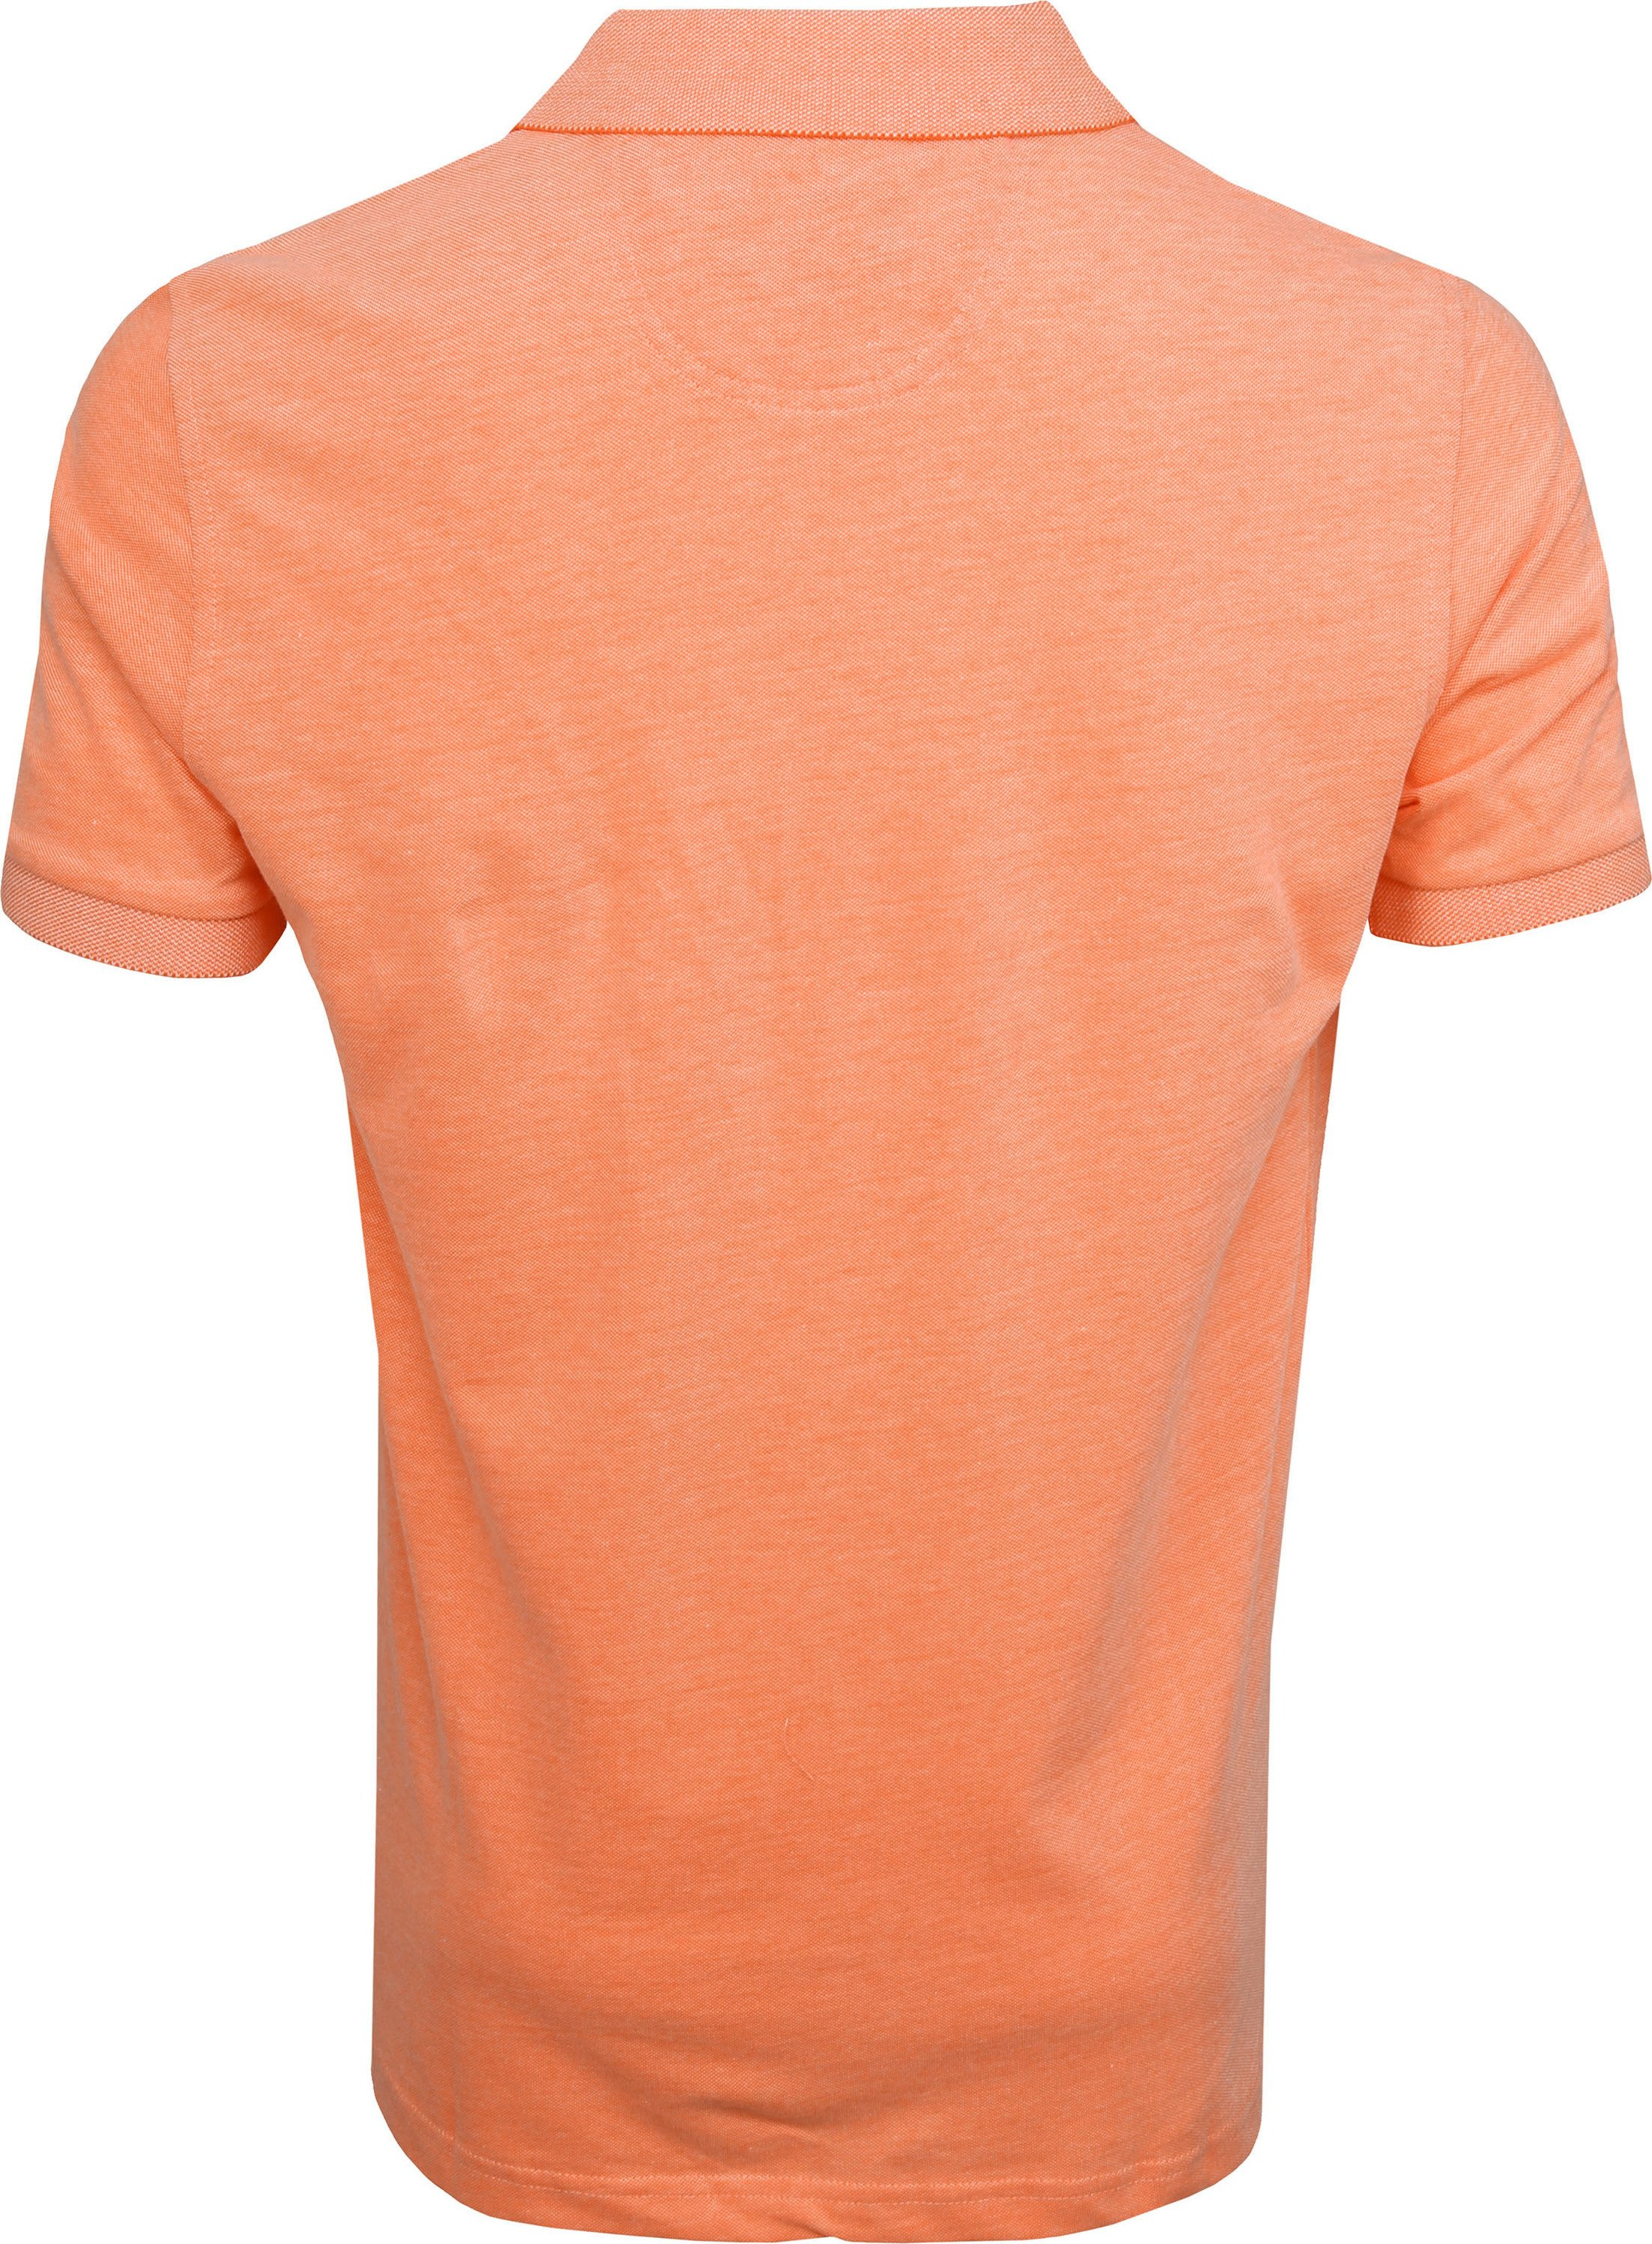 Suitable Oxford Poloshirt Orange foto 3